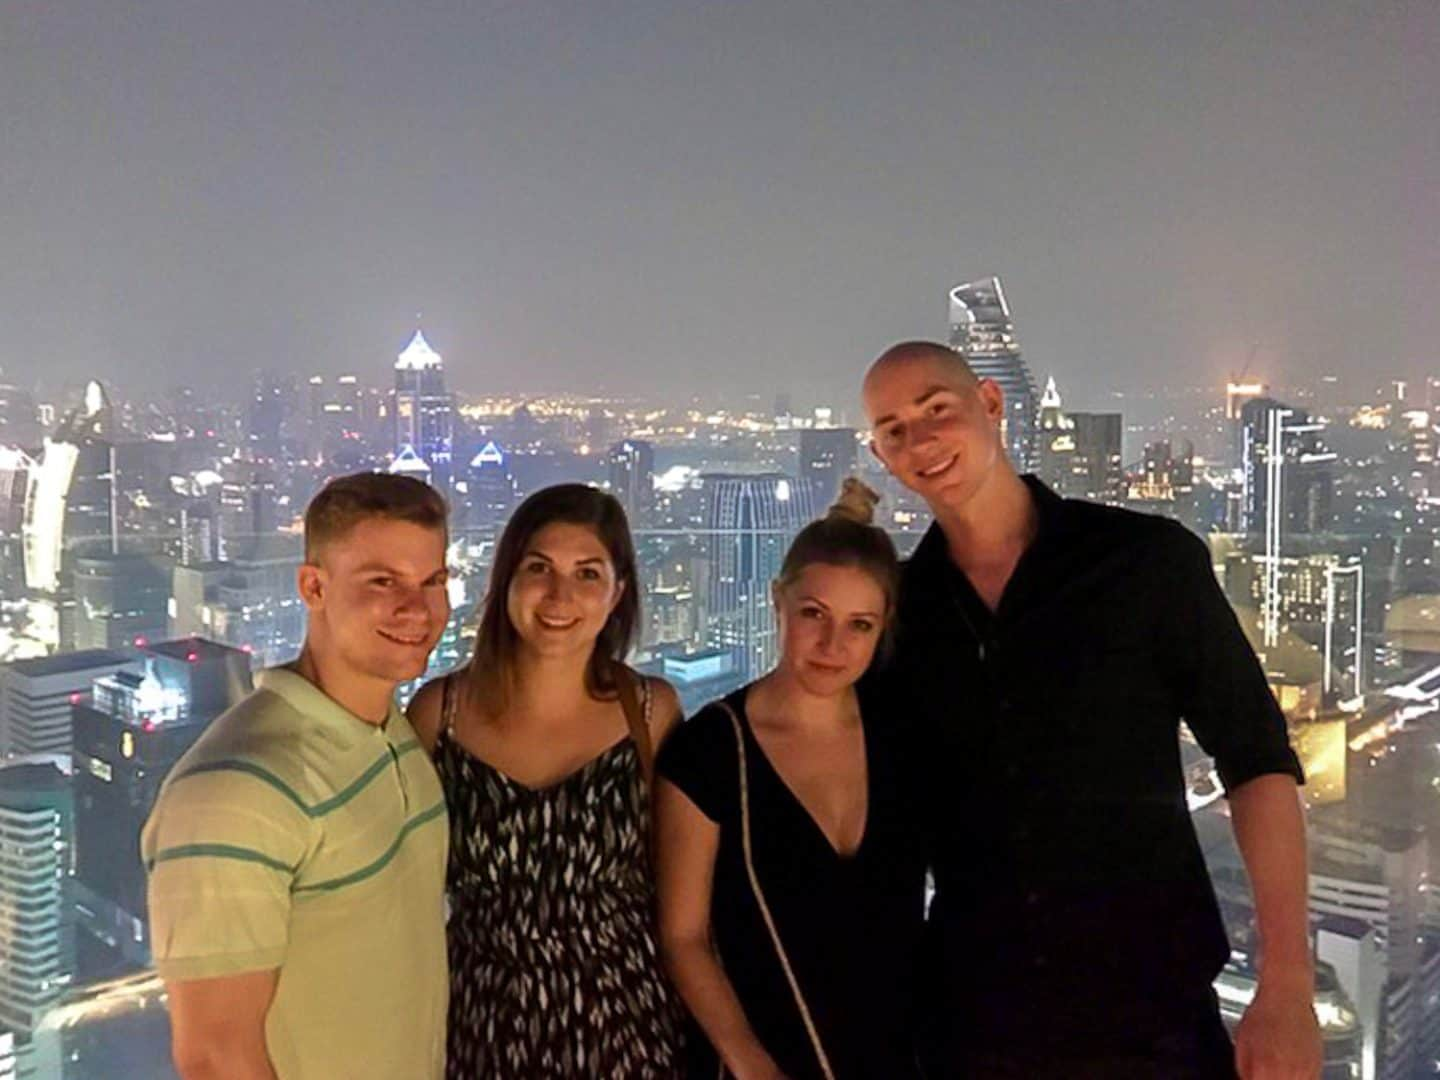 4 friends on a rooftop with the city in the background